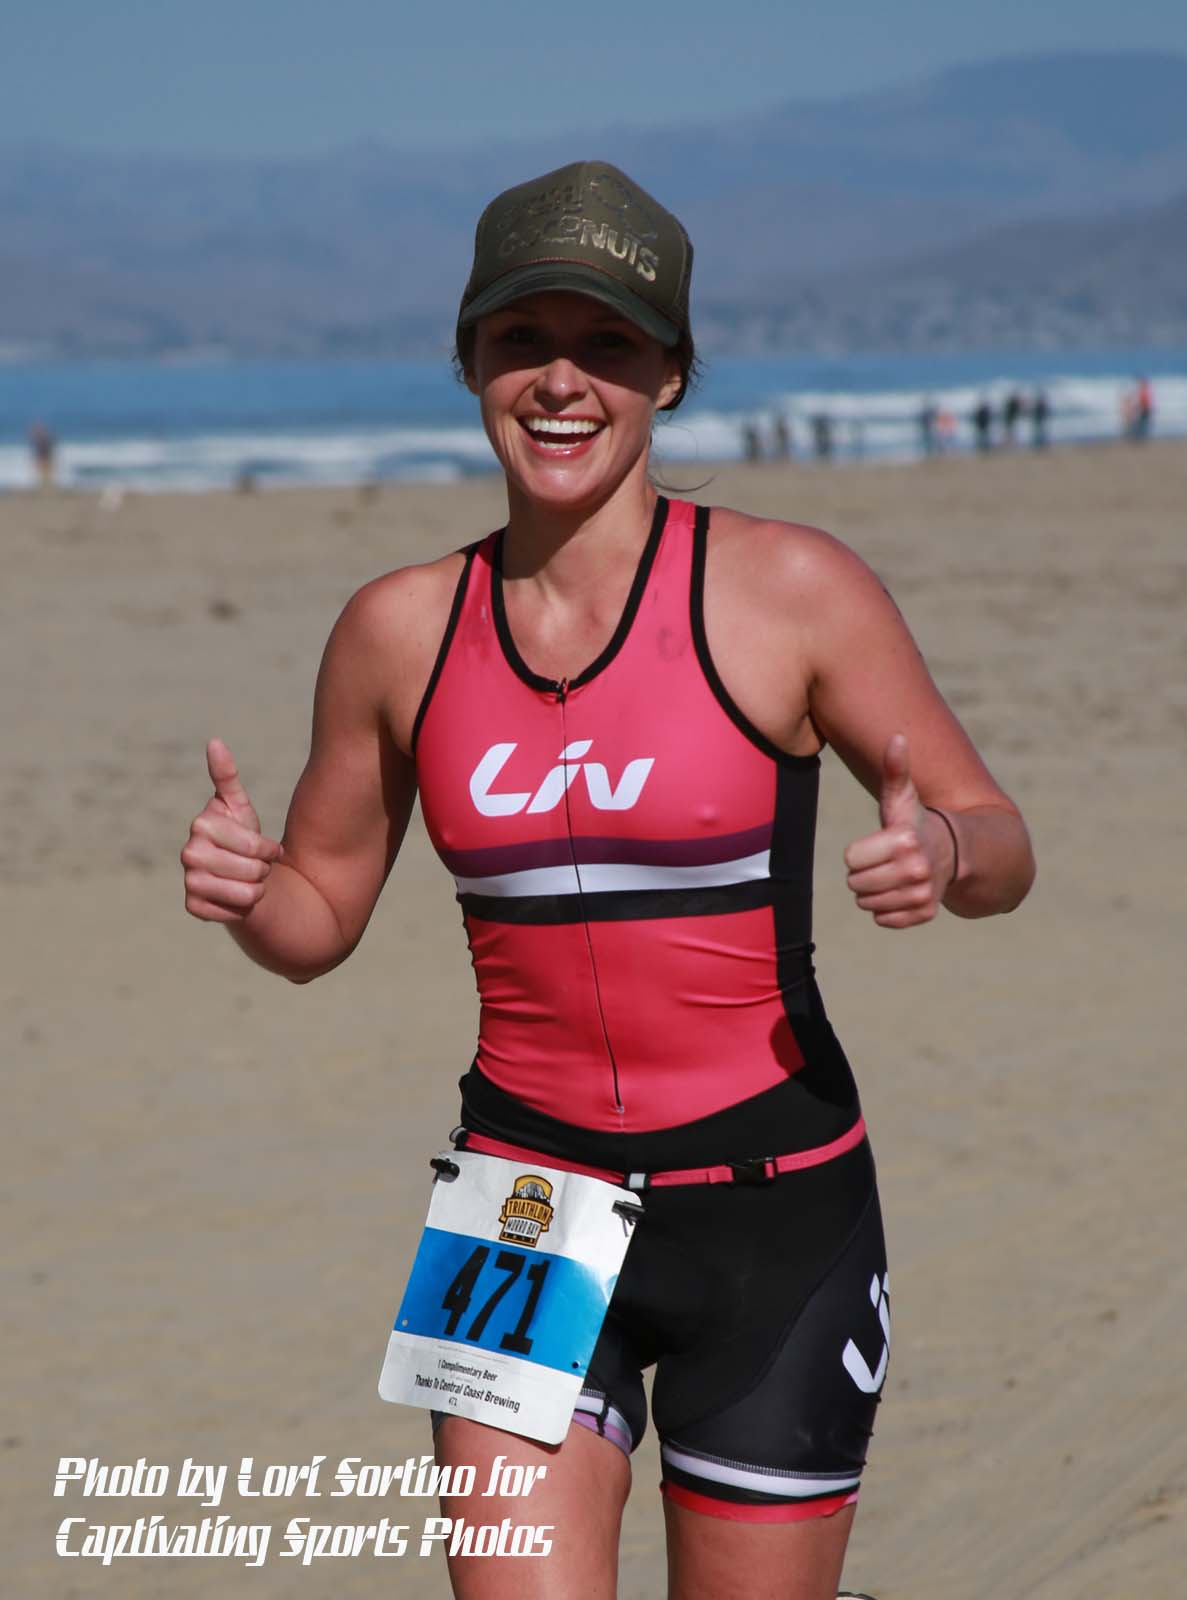 female triathlete running on beach pink shirt Morro Bay Tri